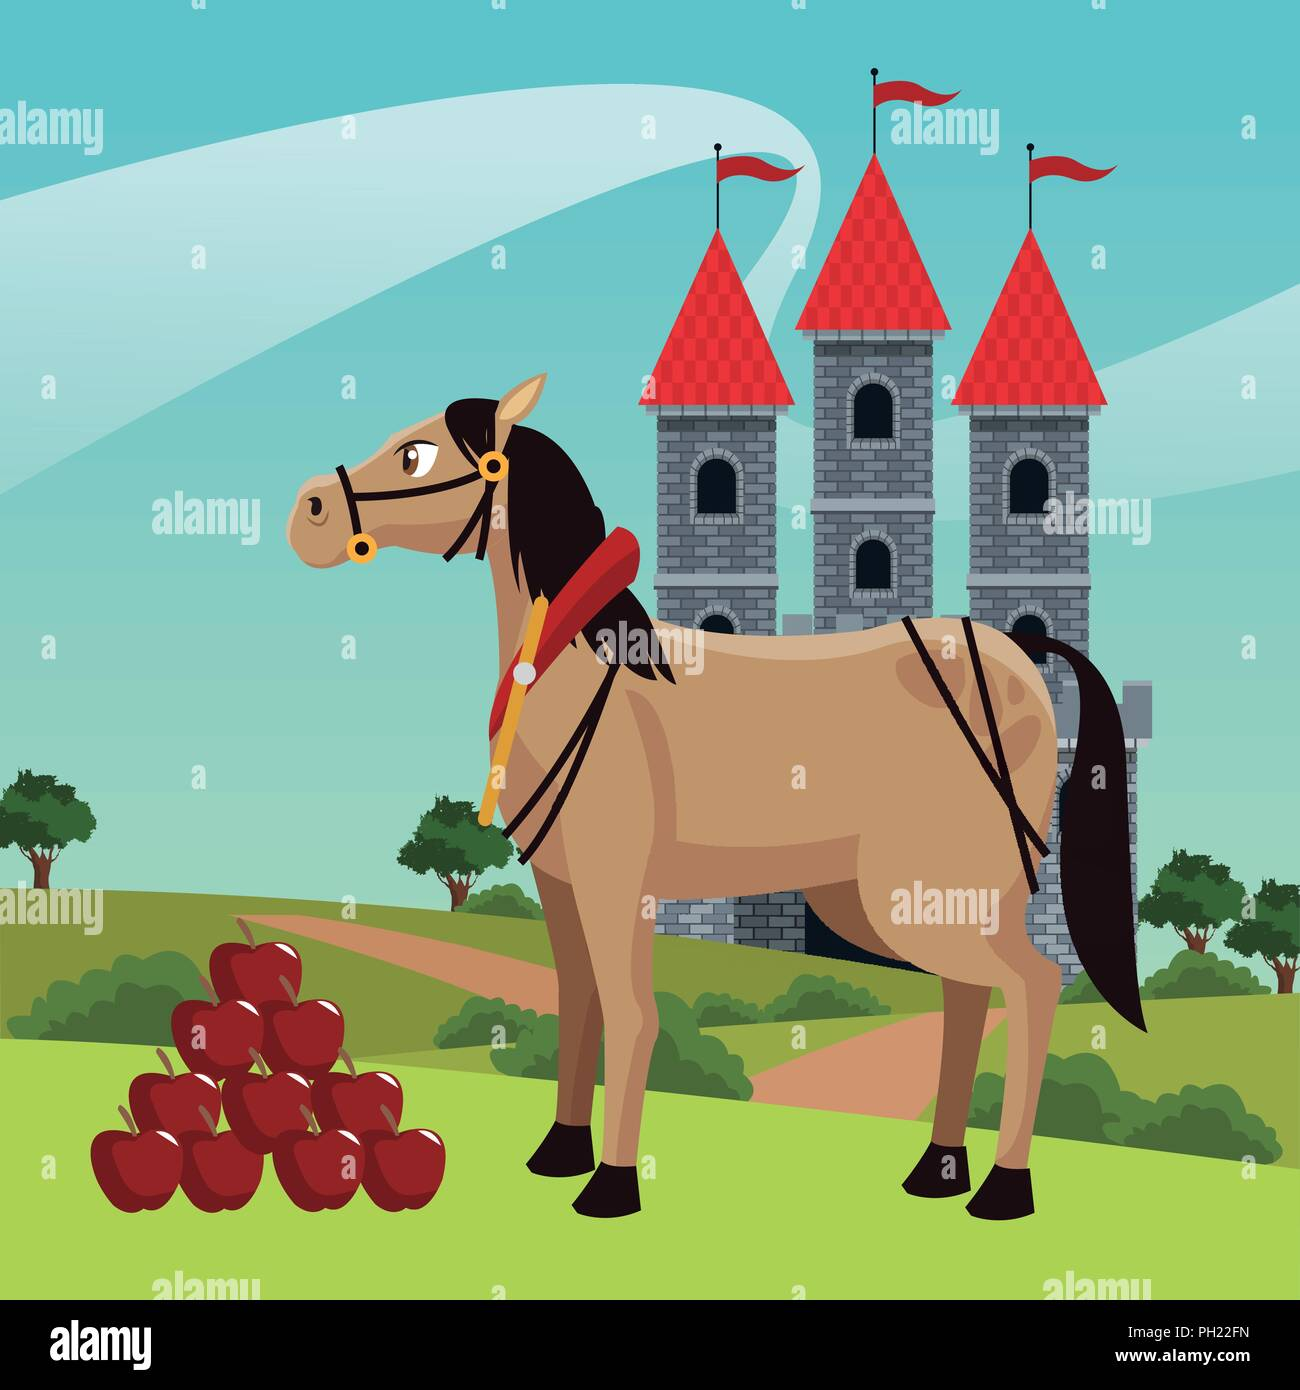 Knight Horse Castle Stock Photos & Knight Horse Castle Stock Images ...